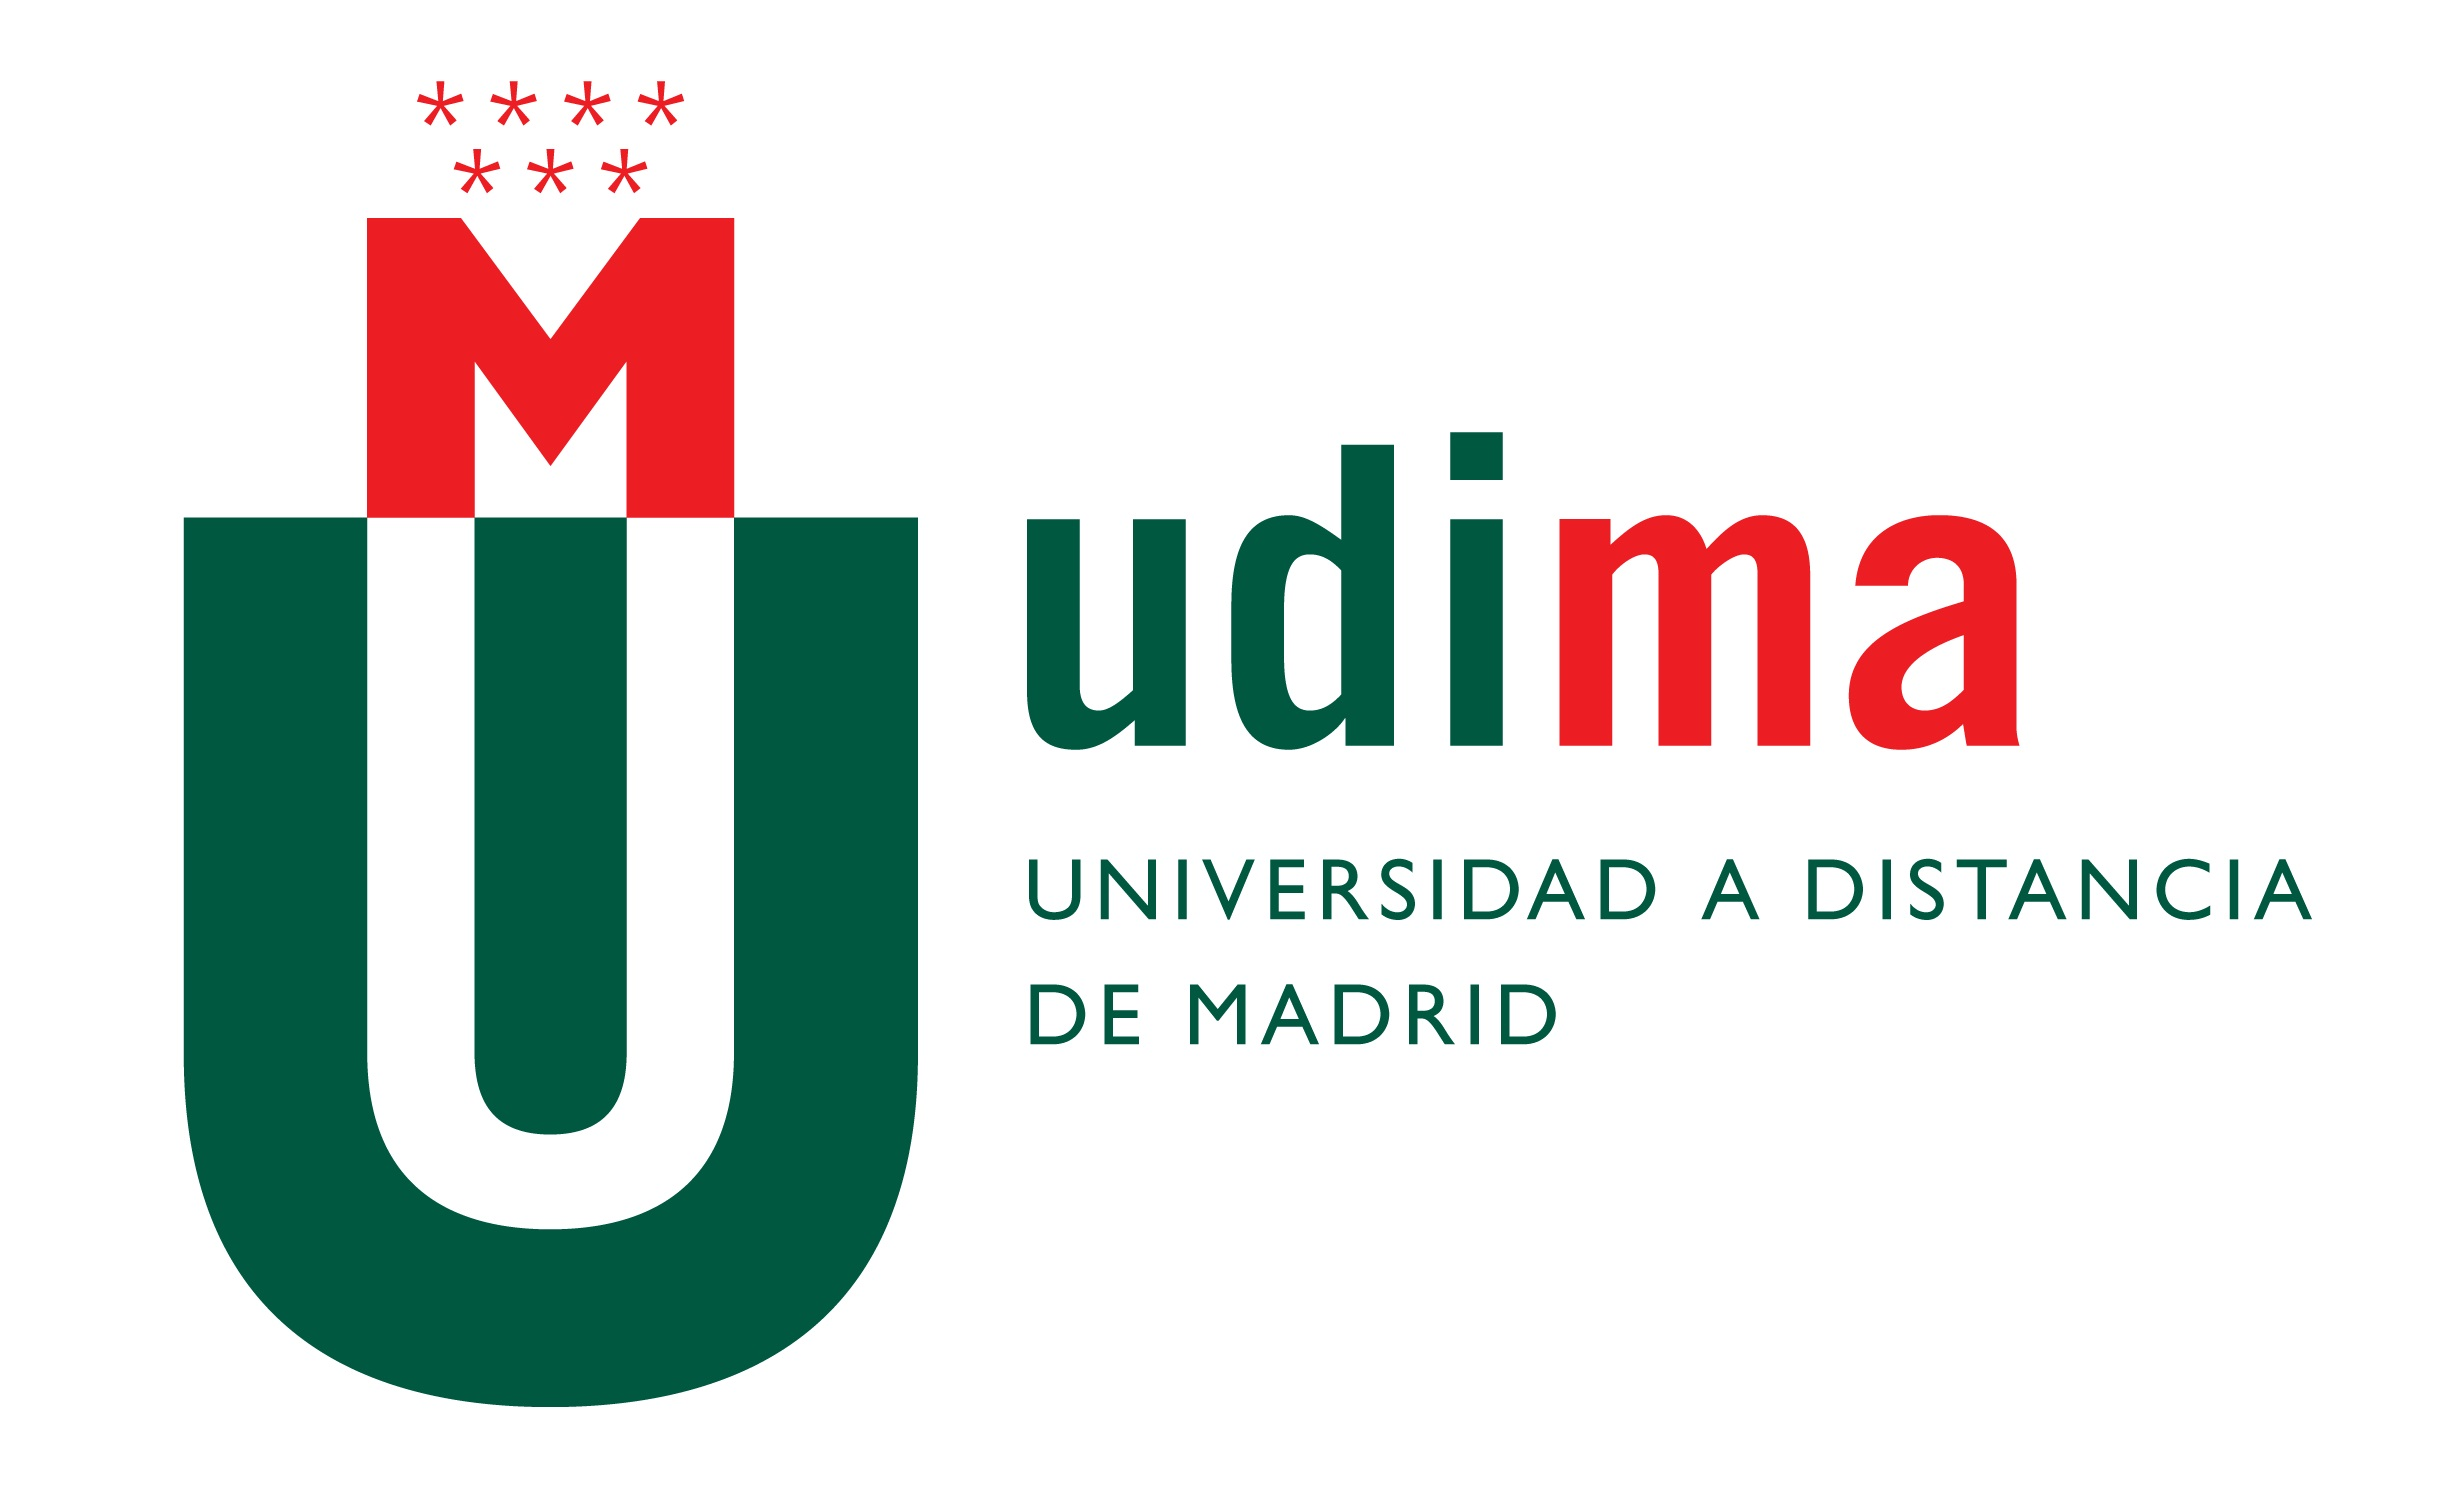 Universidad a Distancia de Madrid (UDIMA)